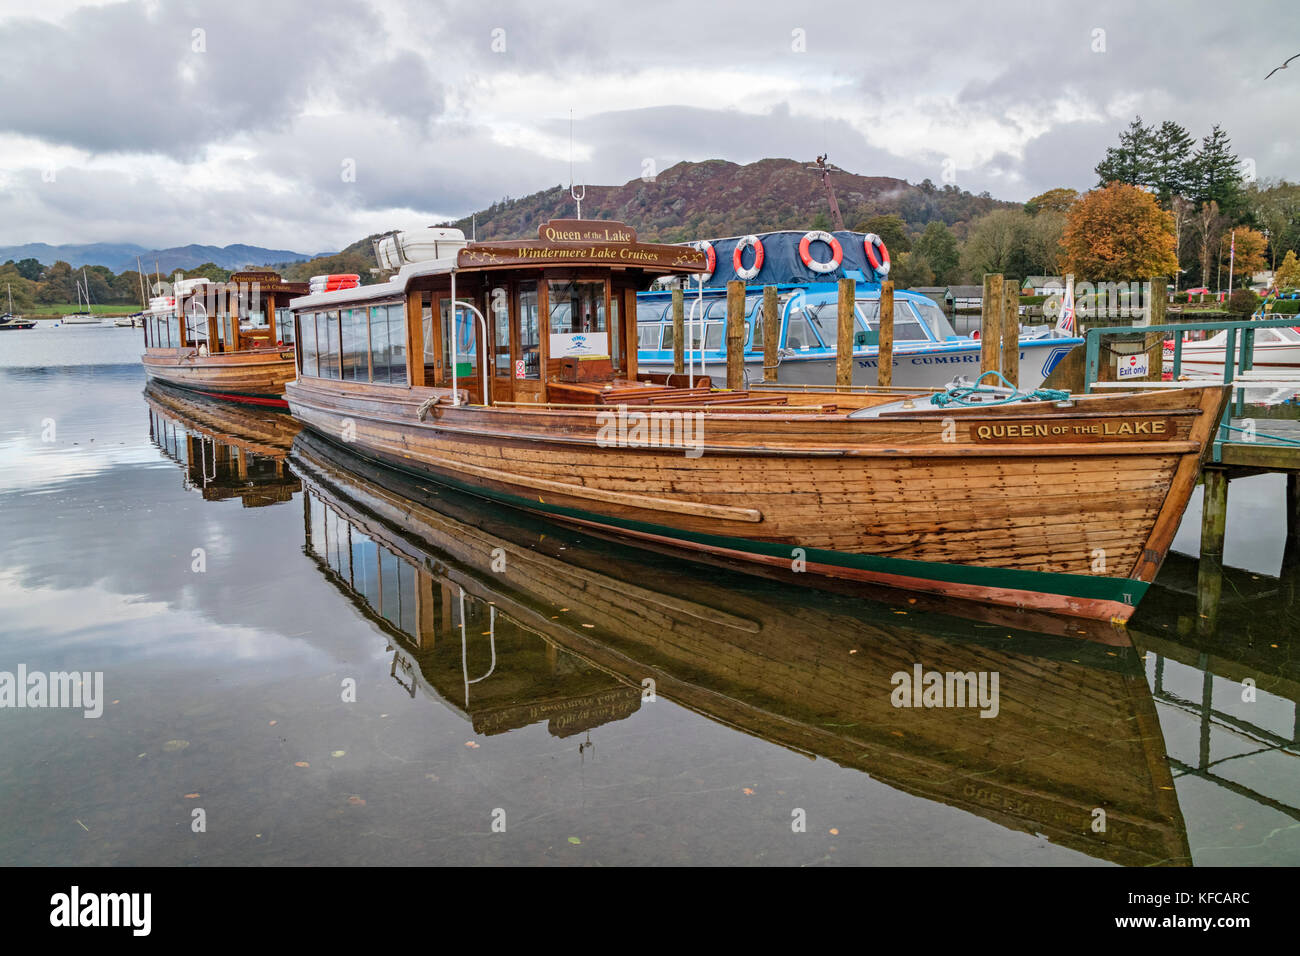 Queen of the Lake, Passenger Vessel on Lake Windermere - Stock Image